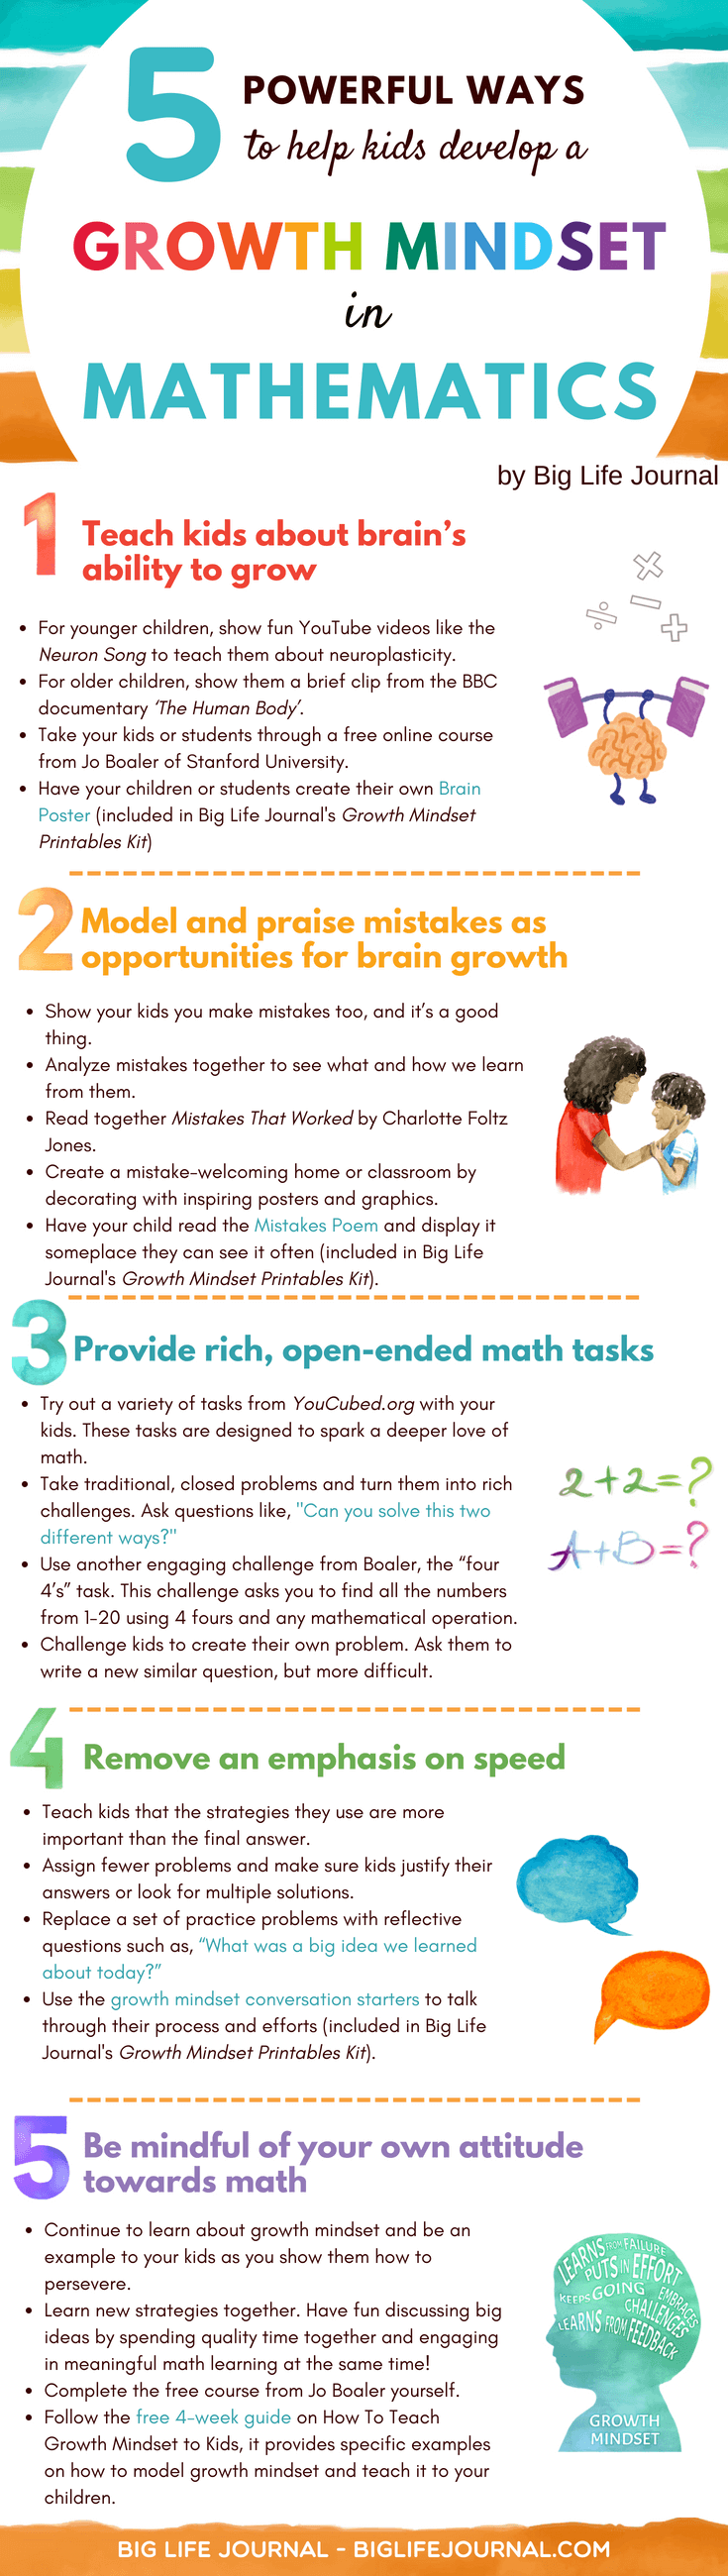 growth mindset in math - big life journal